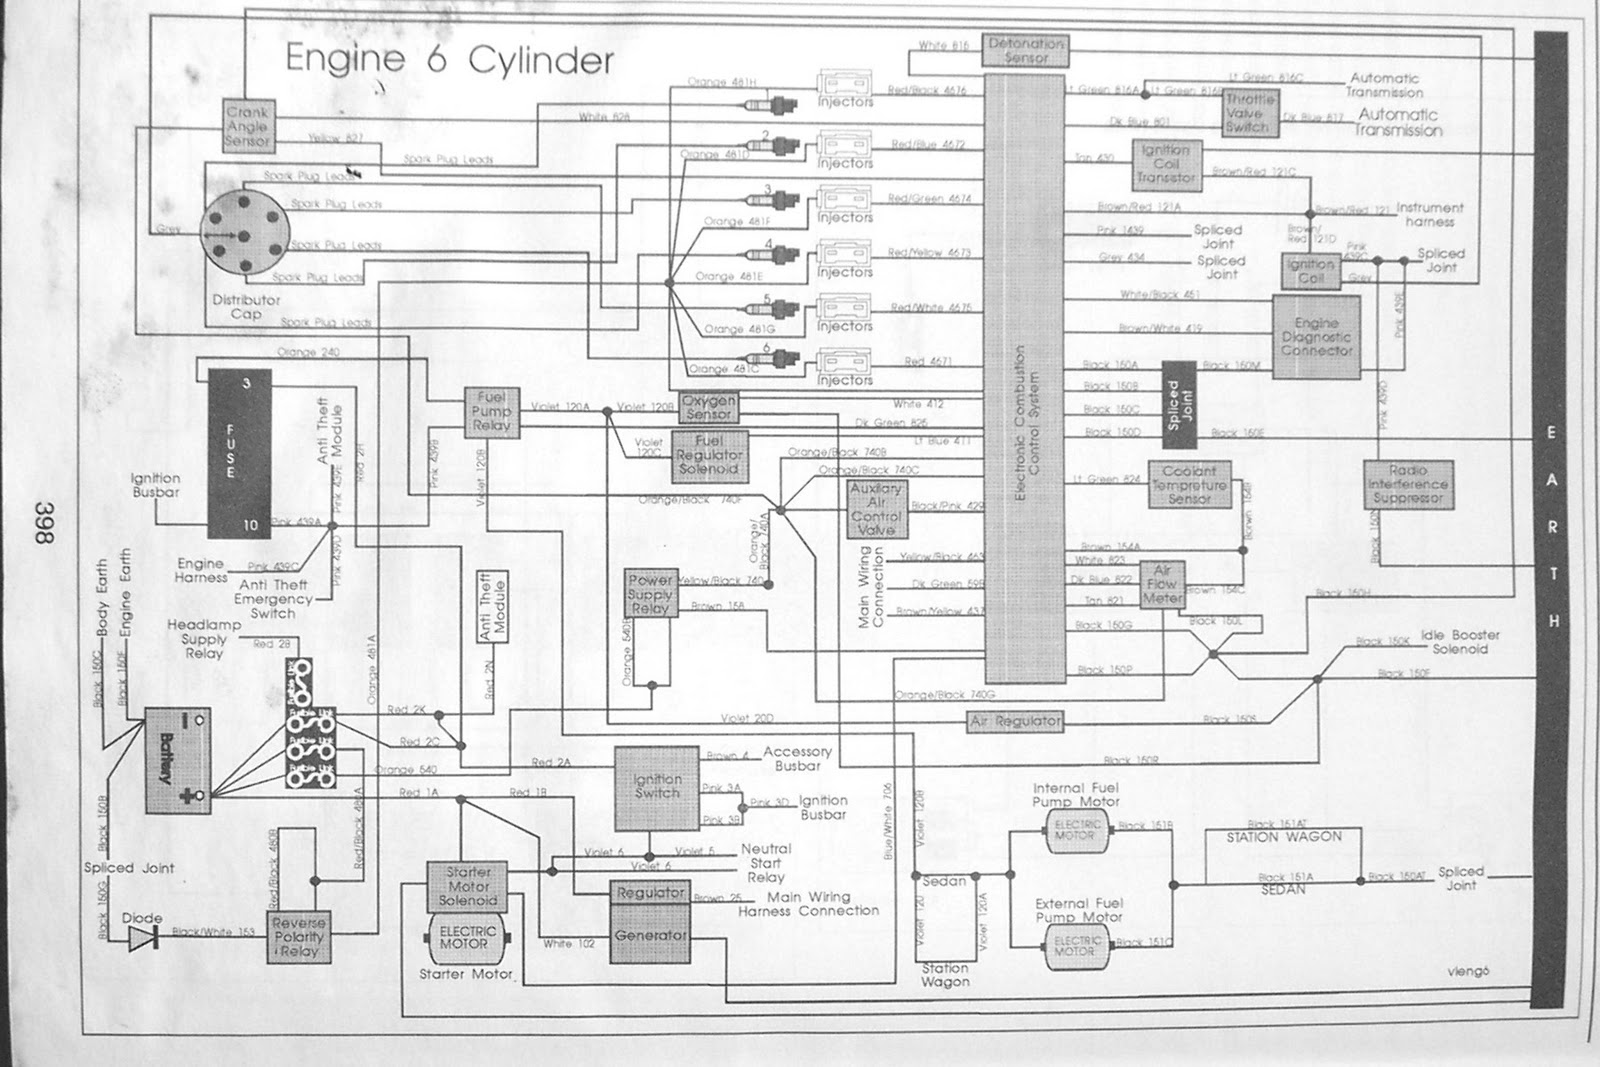 14b rb30 wiring diagrams 280zx project vl wiring diagram at fashall.co